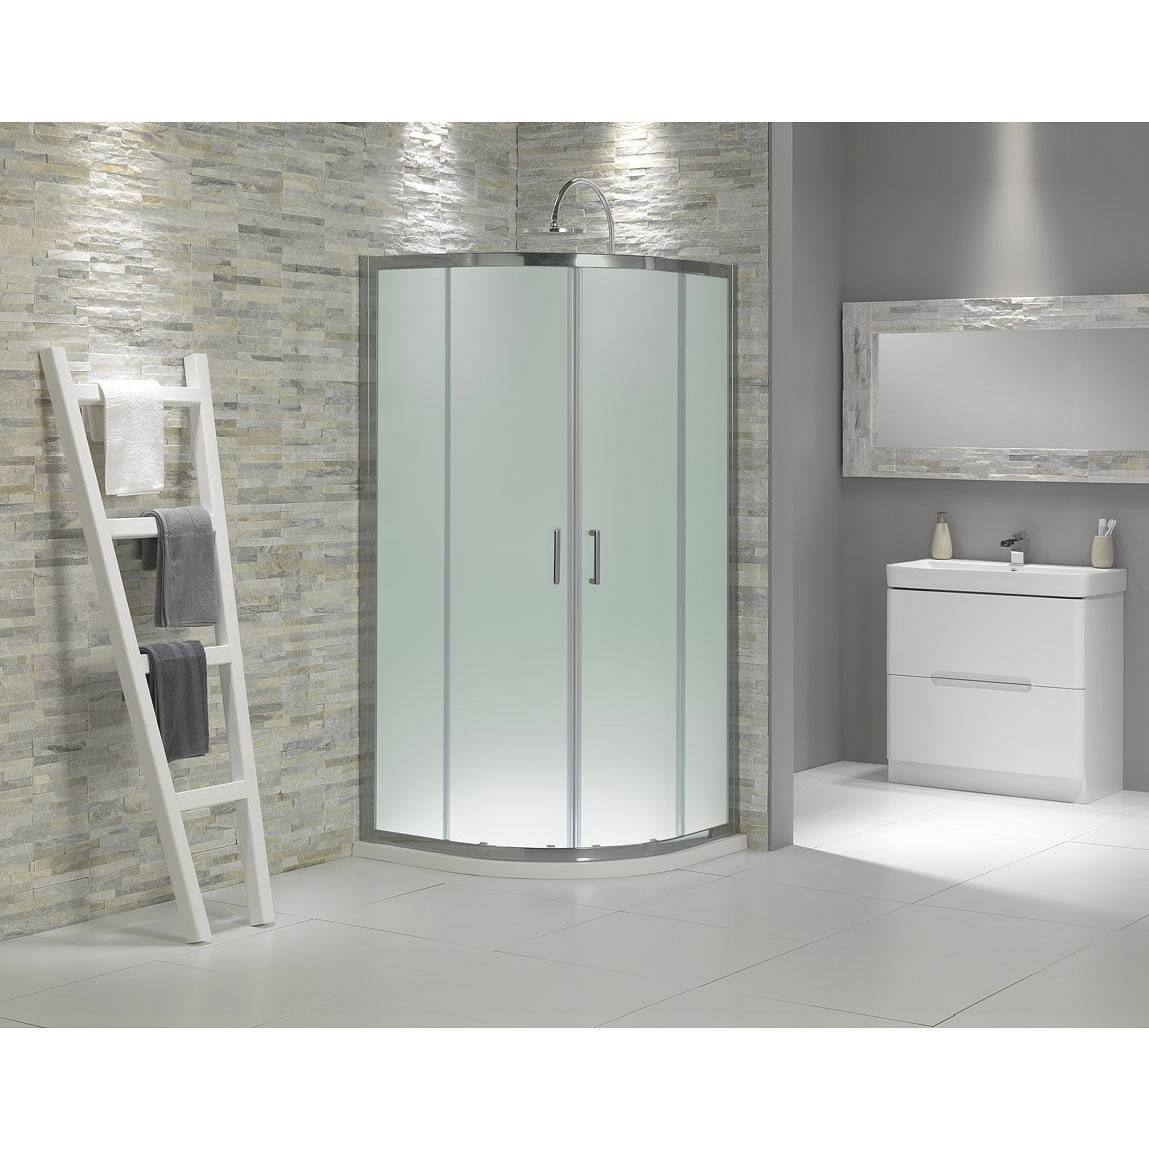 Victoria Plumb Showers >> glass showers | Buy Frosted Glass Quadrant Shower Enclosure 900 in Quadrant Shower ... | Modern ...